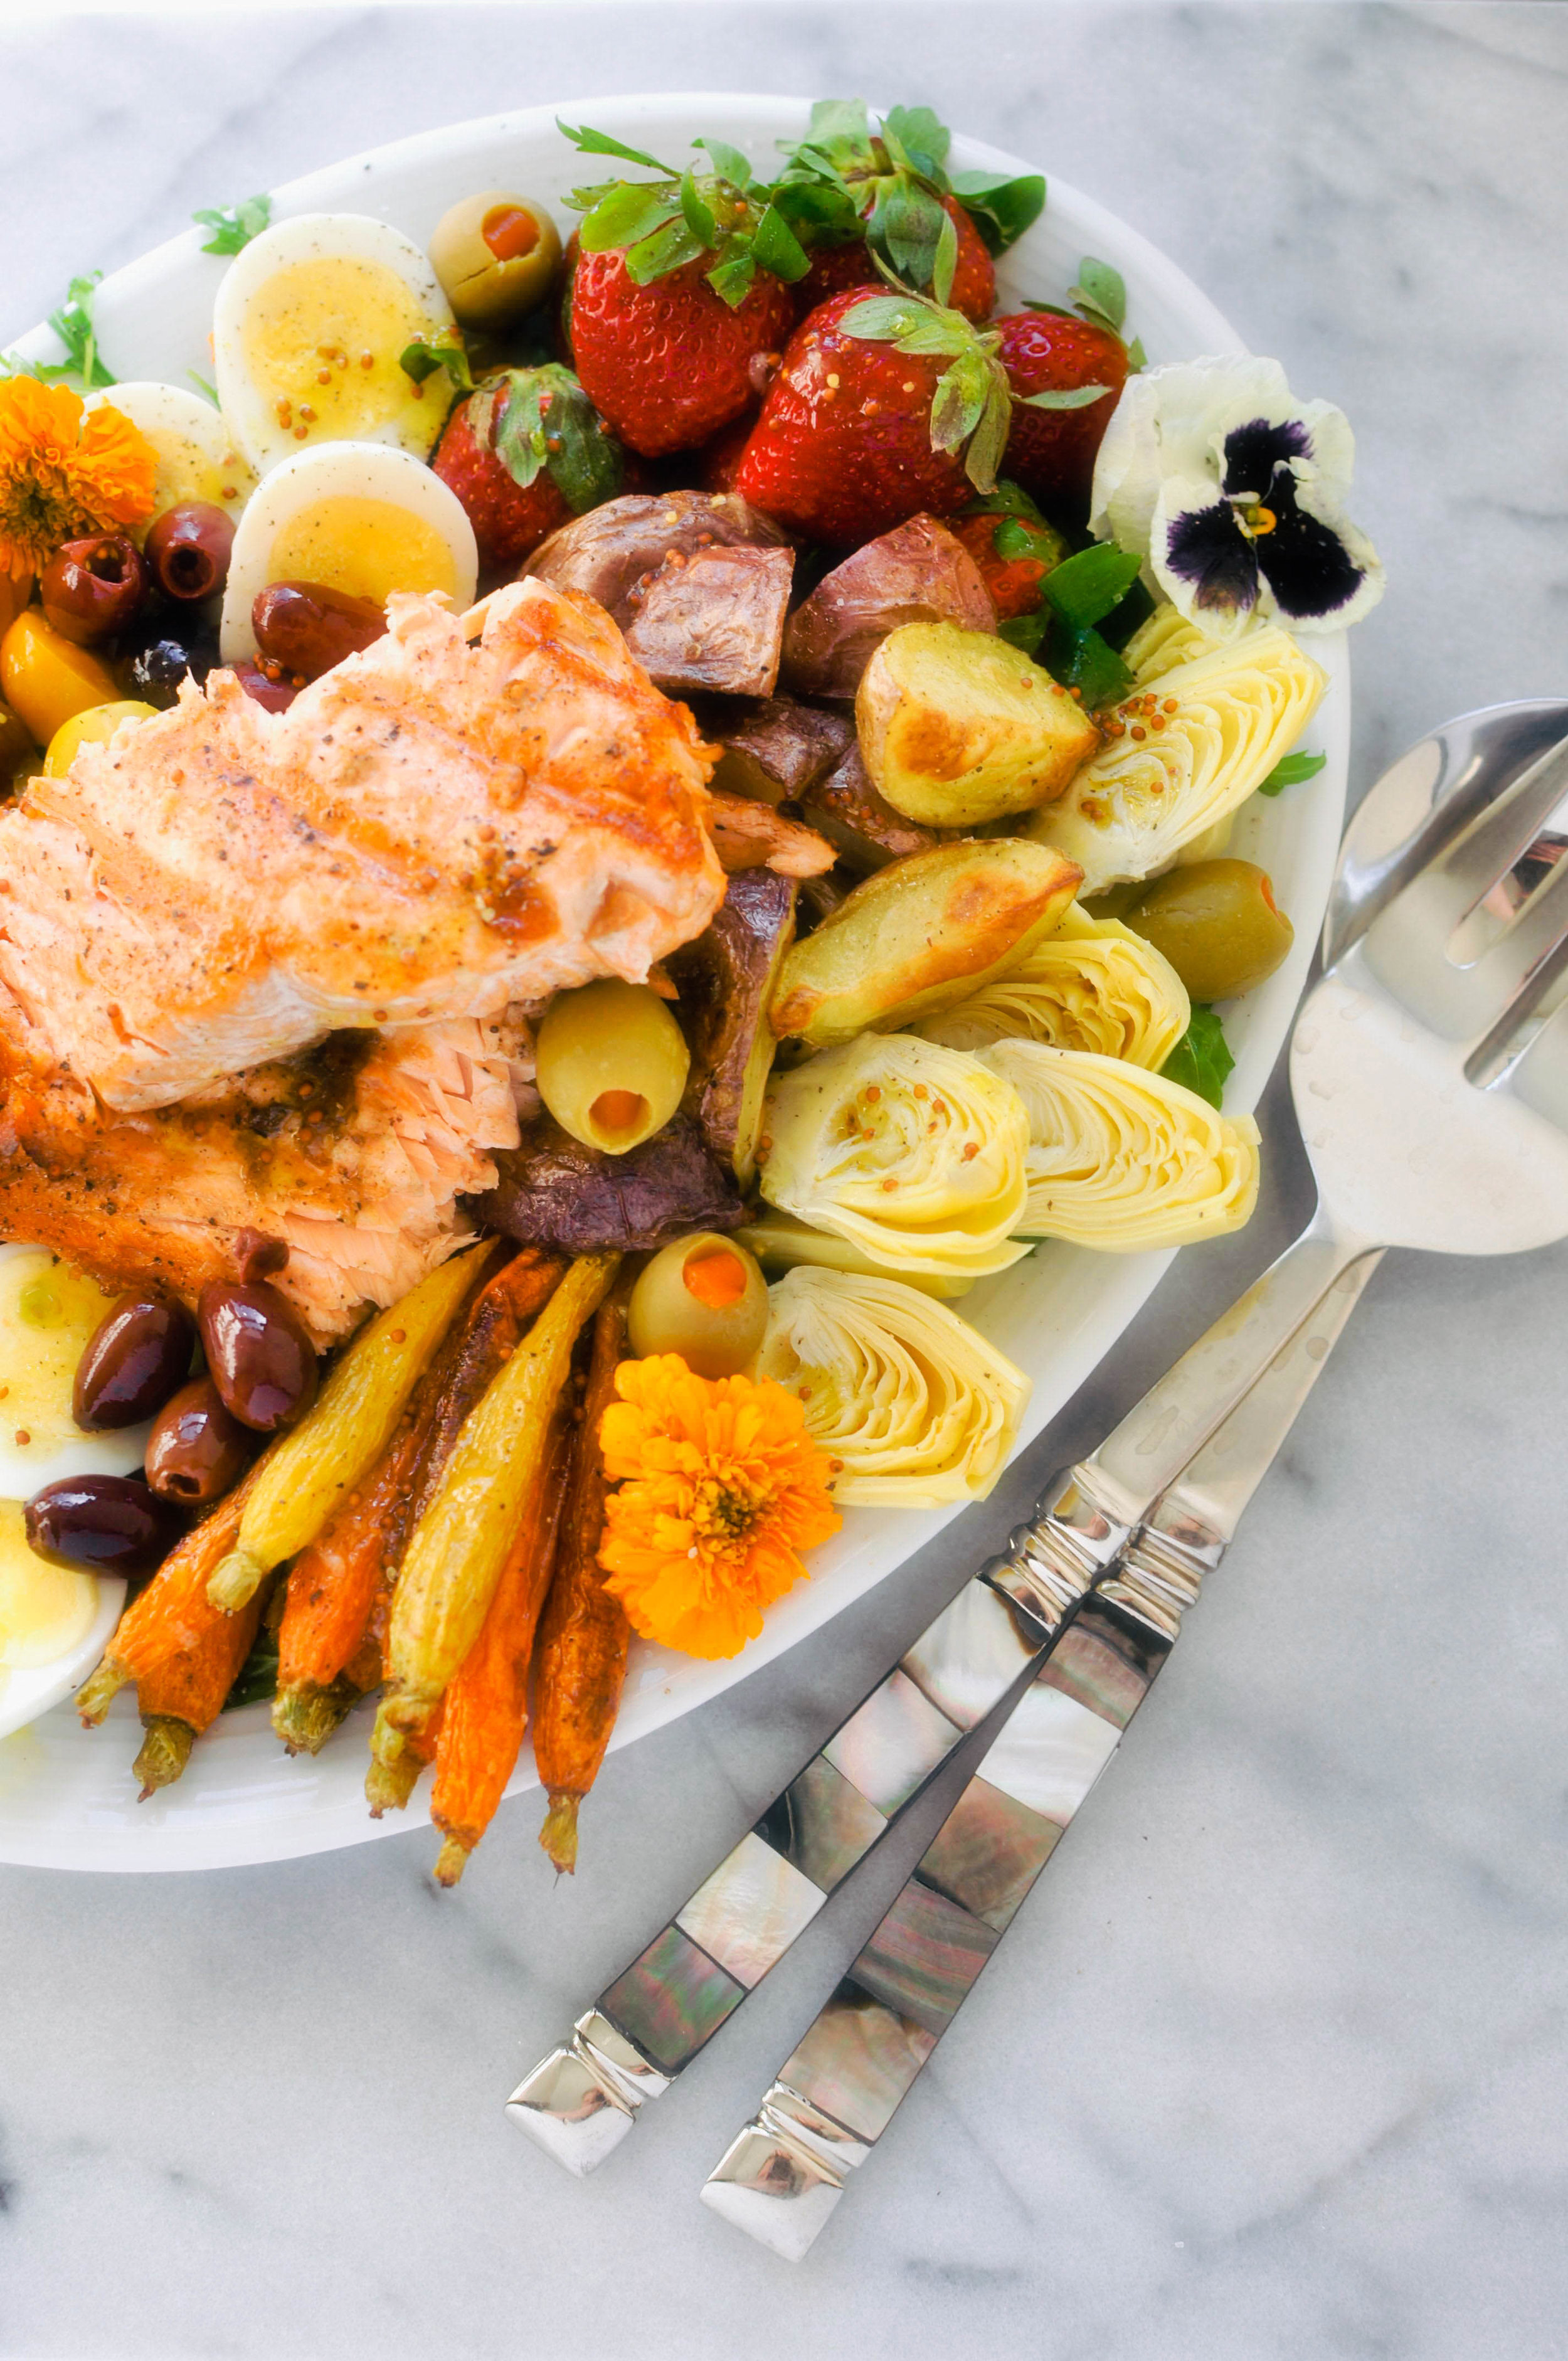 The Everything Salmon Salad Niçoise from This Healthy Table. Get the Recipe here. - The perfect pescetarian brunch option!